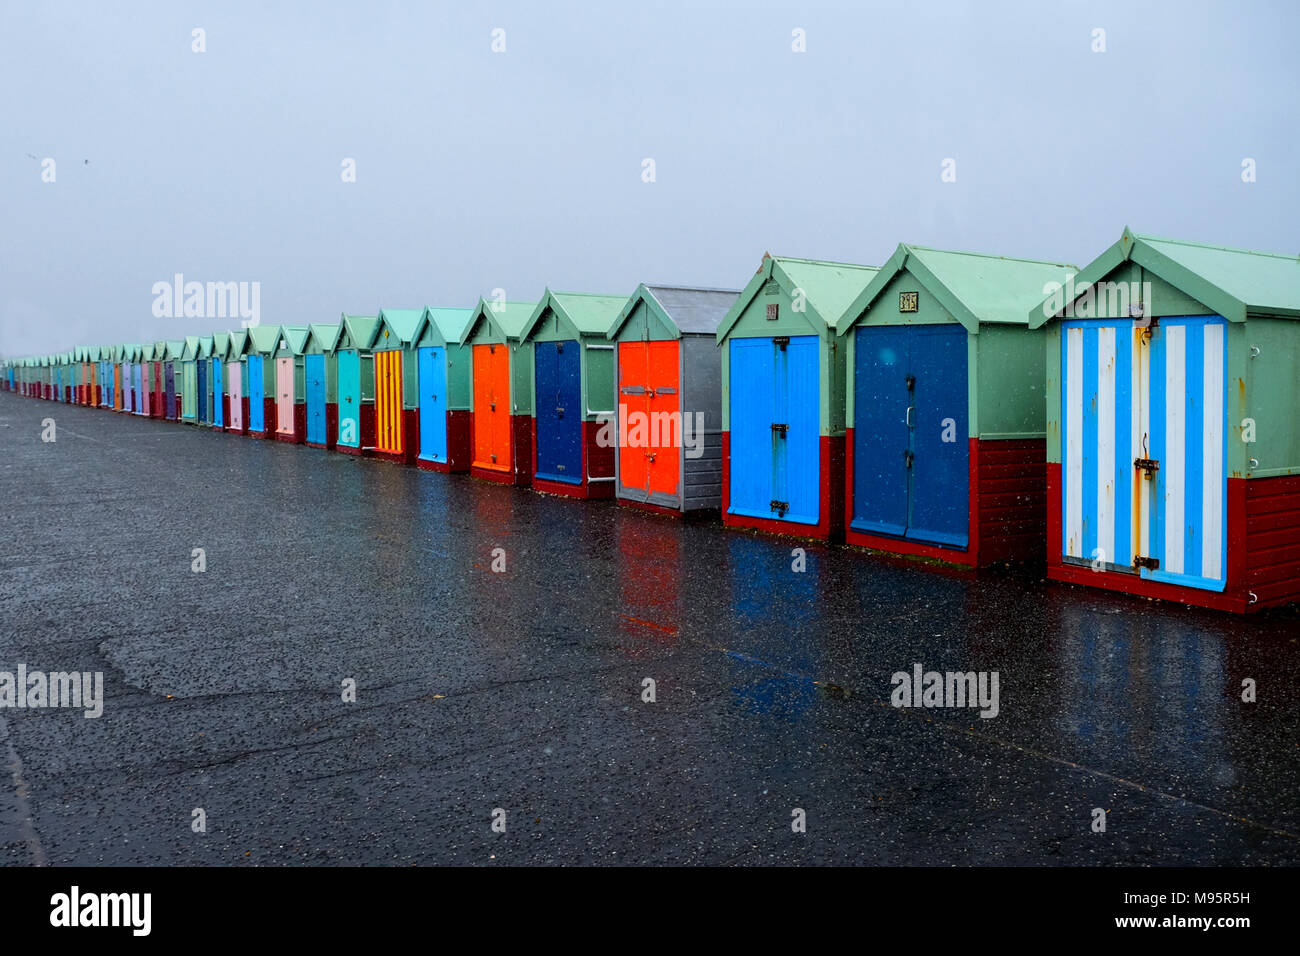 a line of 40 Beach huts with different multicoloured doors on a concrete promenade, the nearest beach huts on the right of the image are large going t - Stock Image